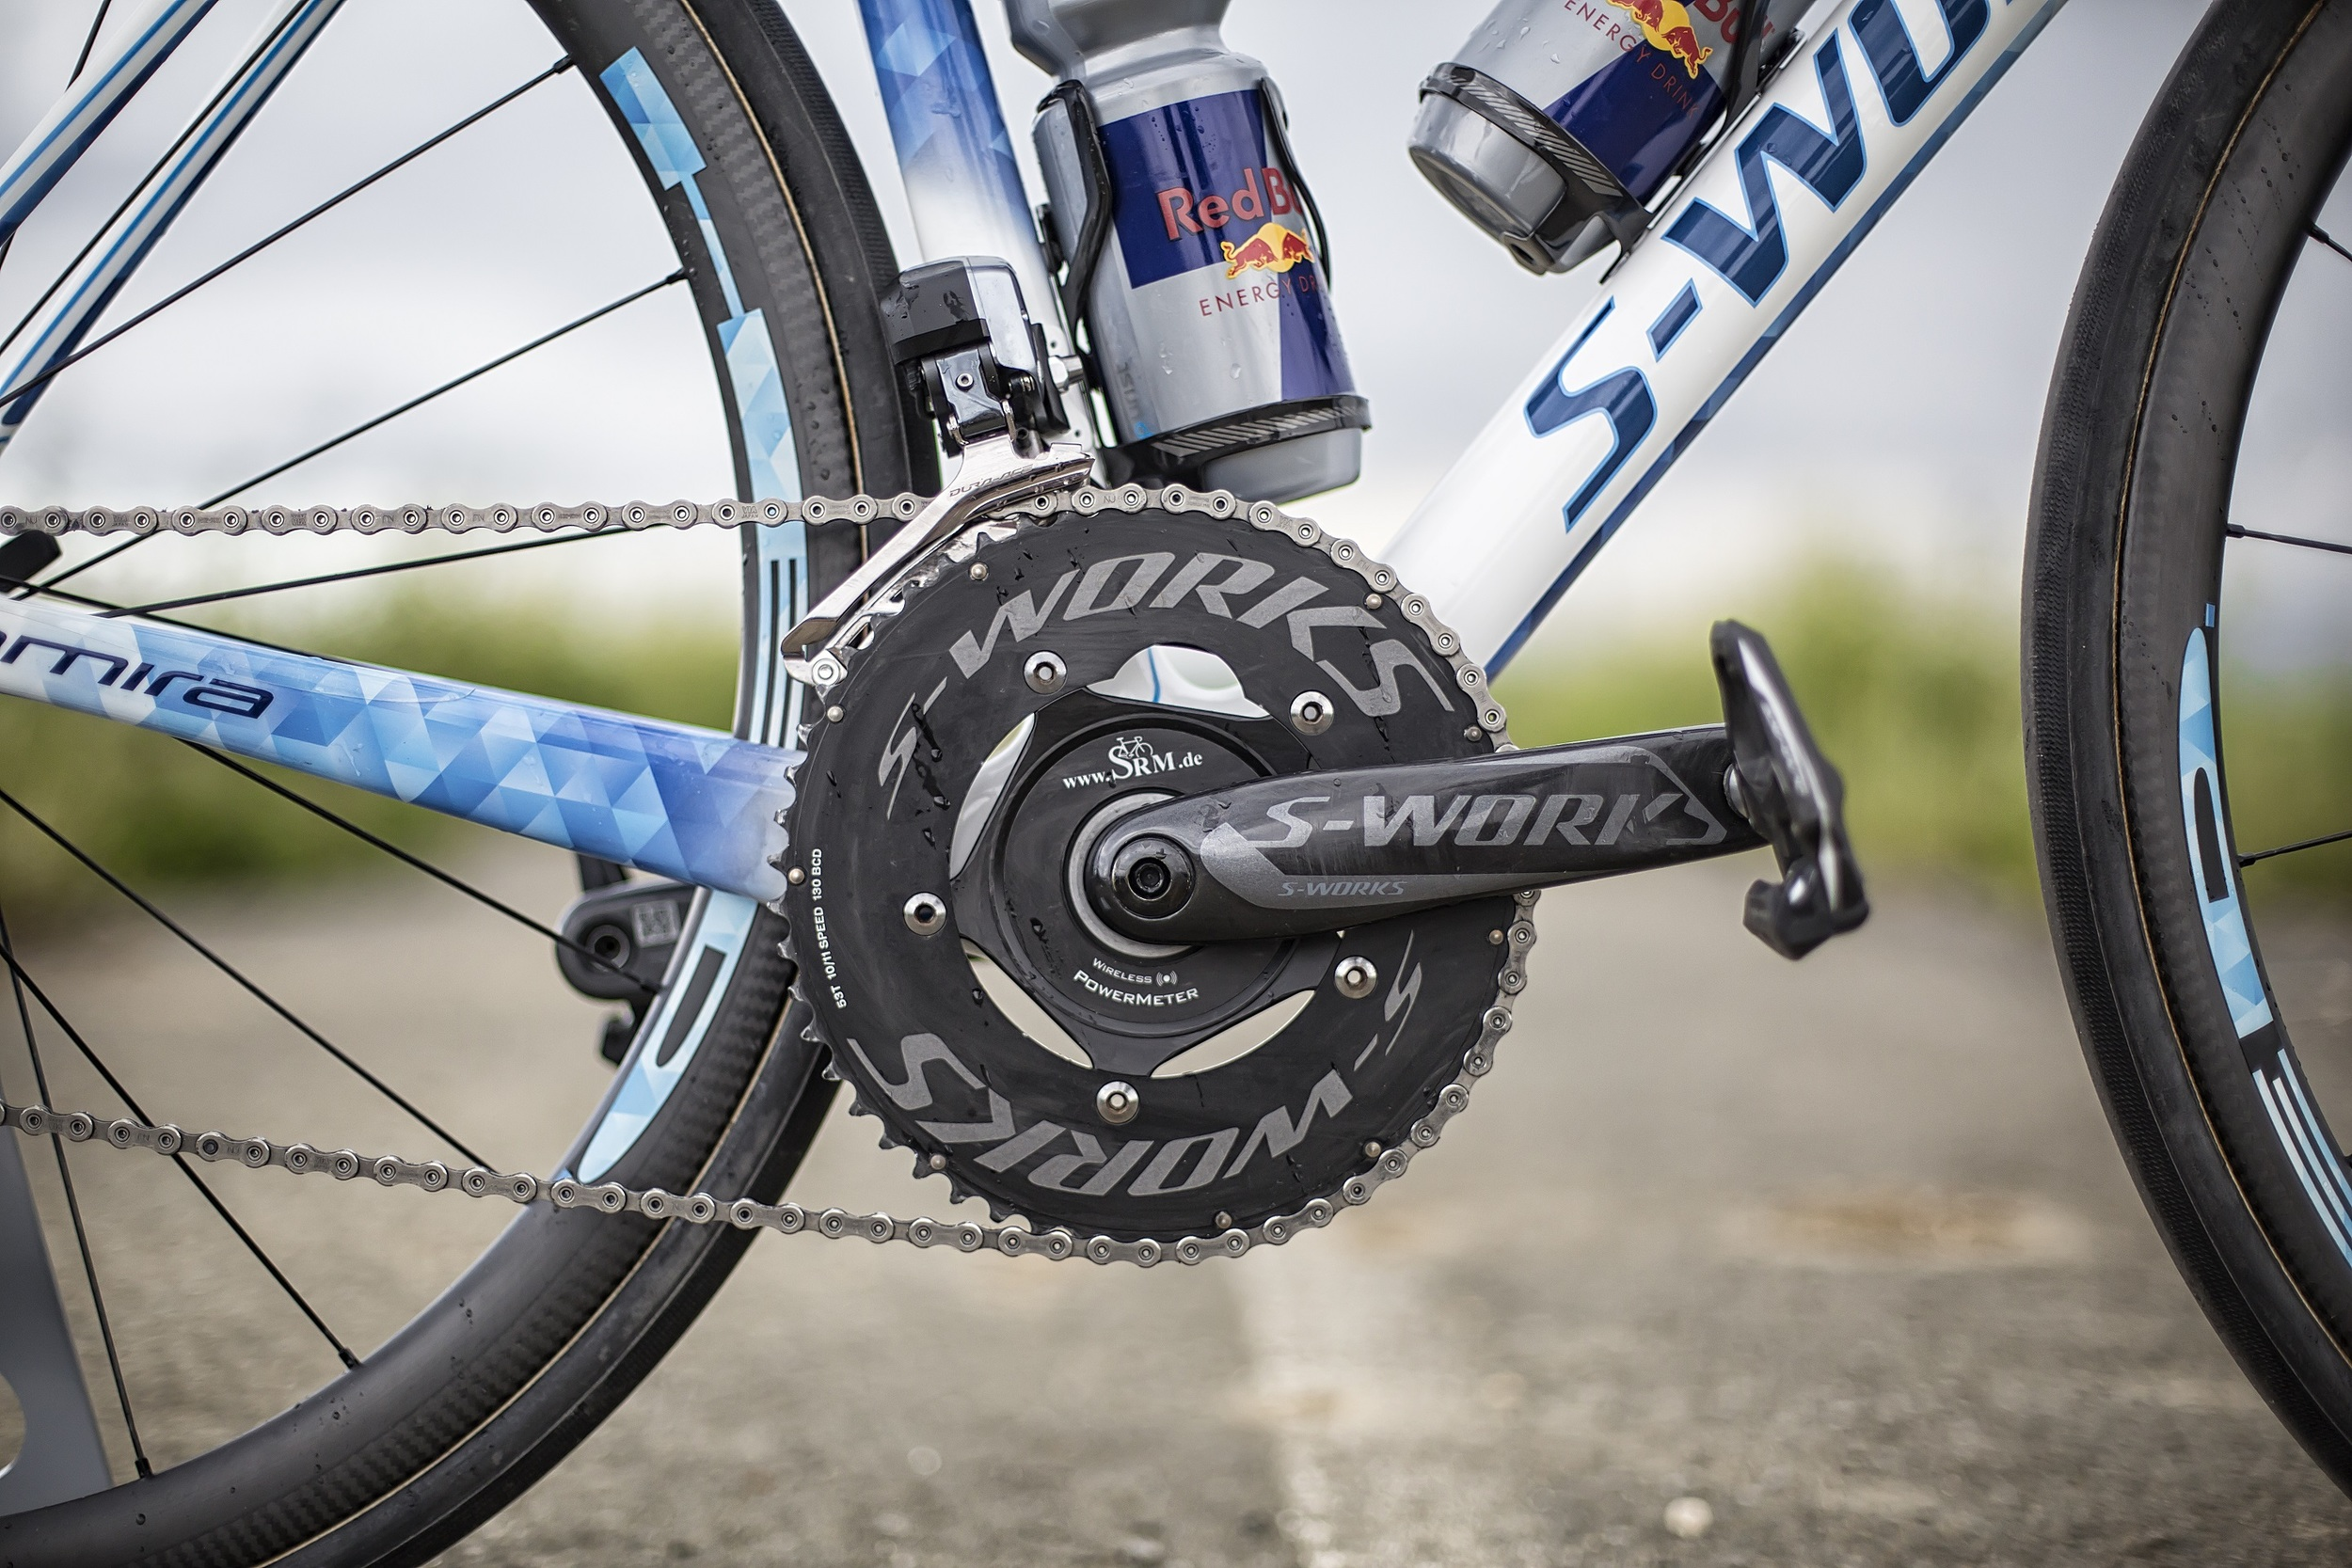 S-works SRM cranks, in Leeds I will be using 53-39 chainrings